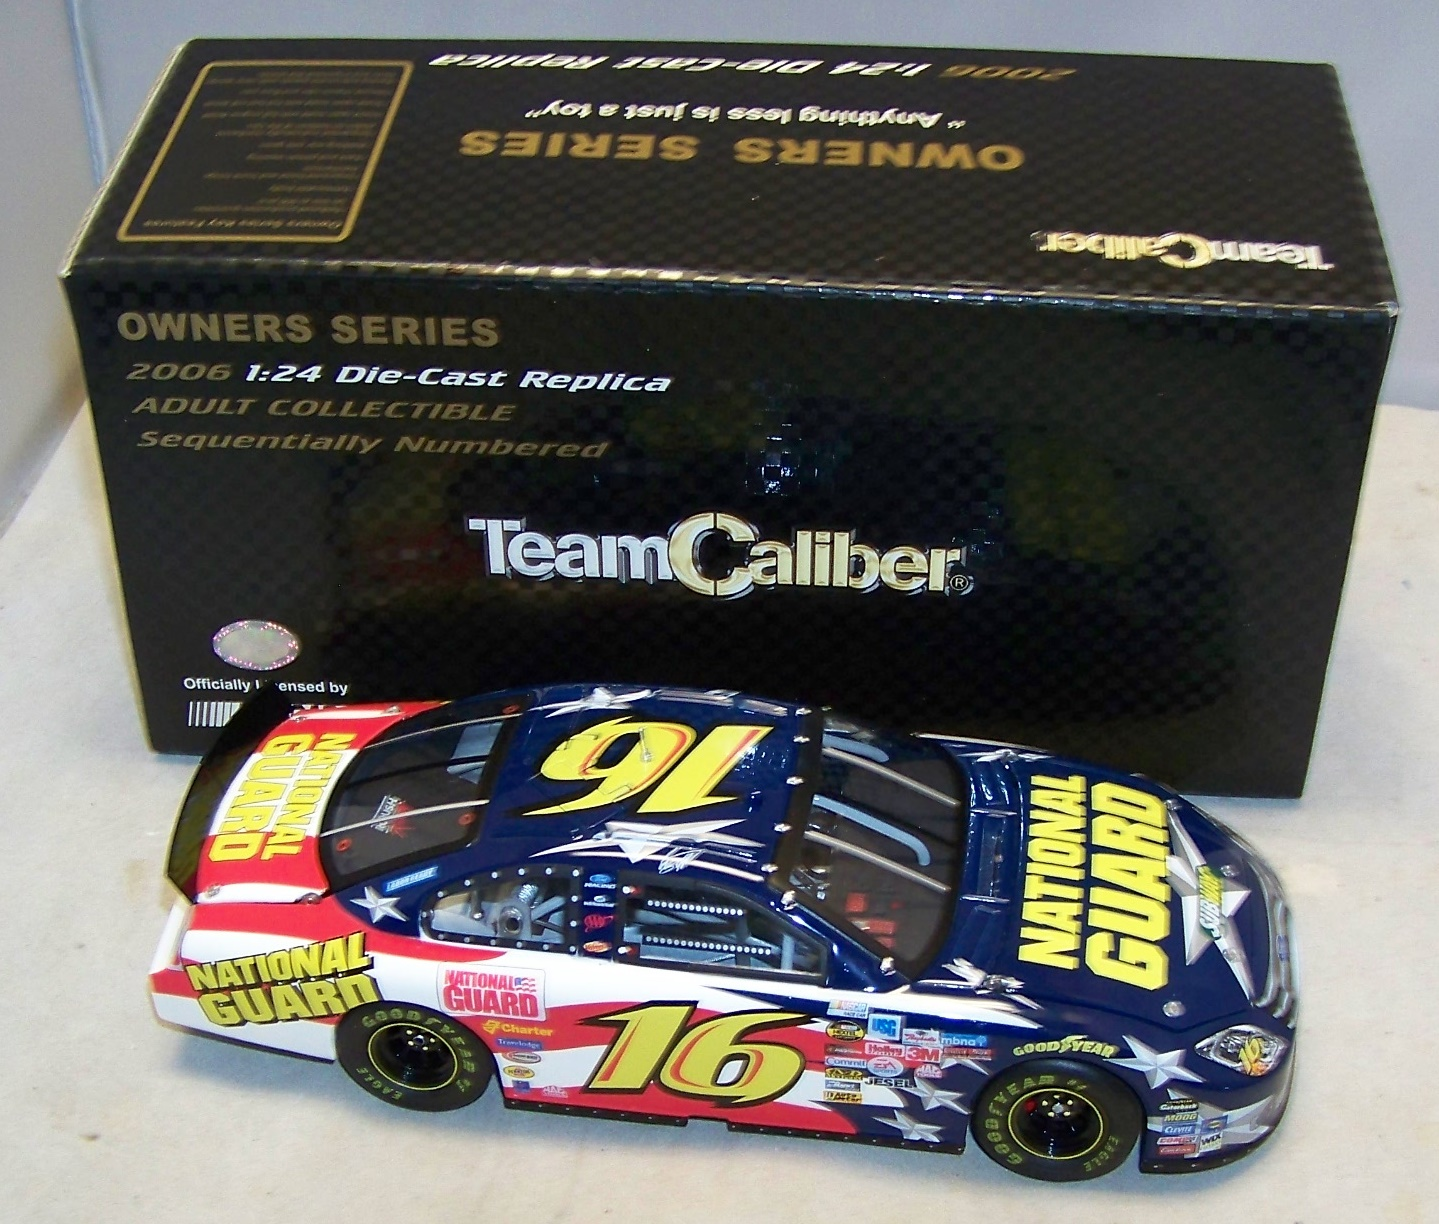 2006 Greg Biffle NASCAR Diecast 16 National Guard CWC 1:24 Team Caliber Owners 1